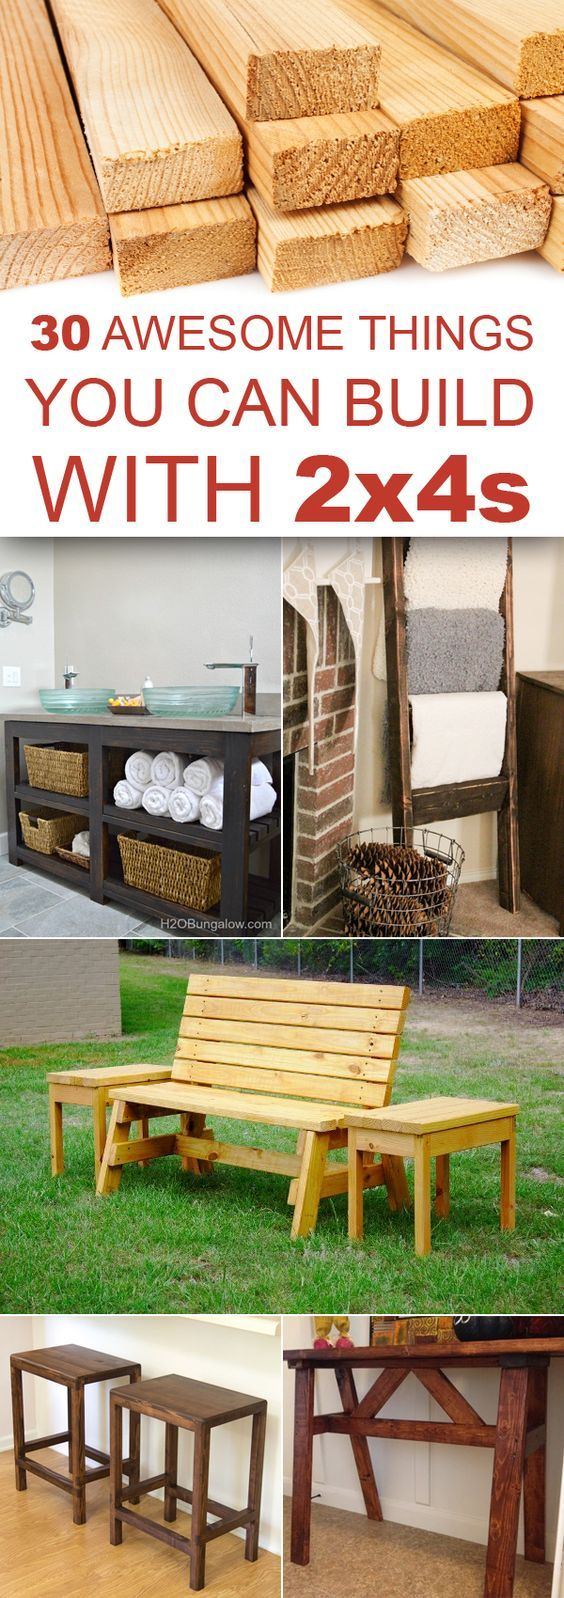 30 Awesome Things You Can Build With 2x4s…